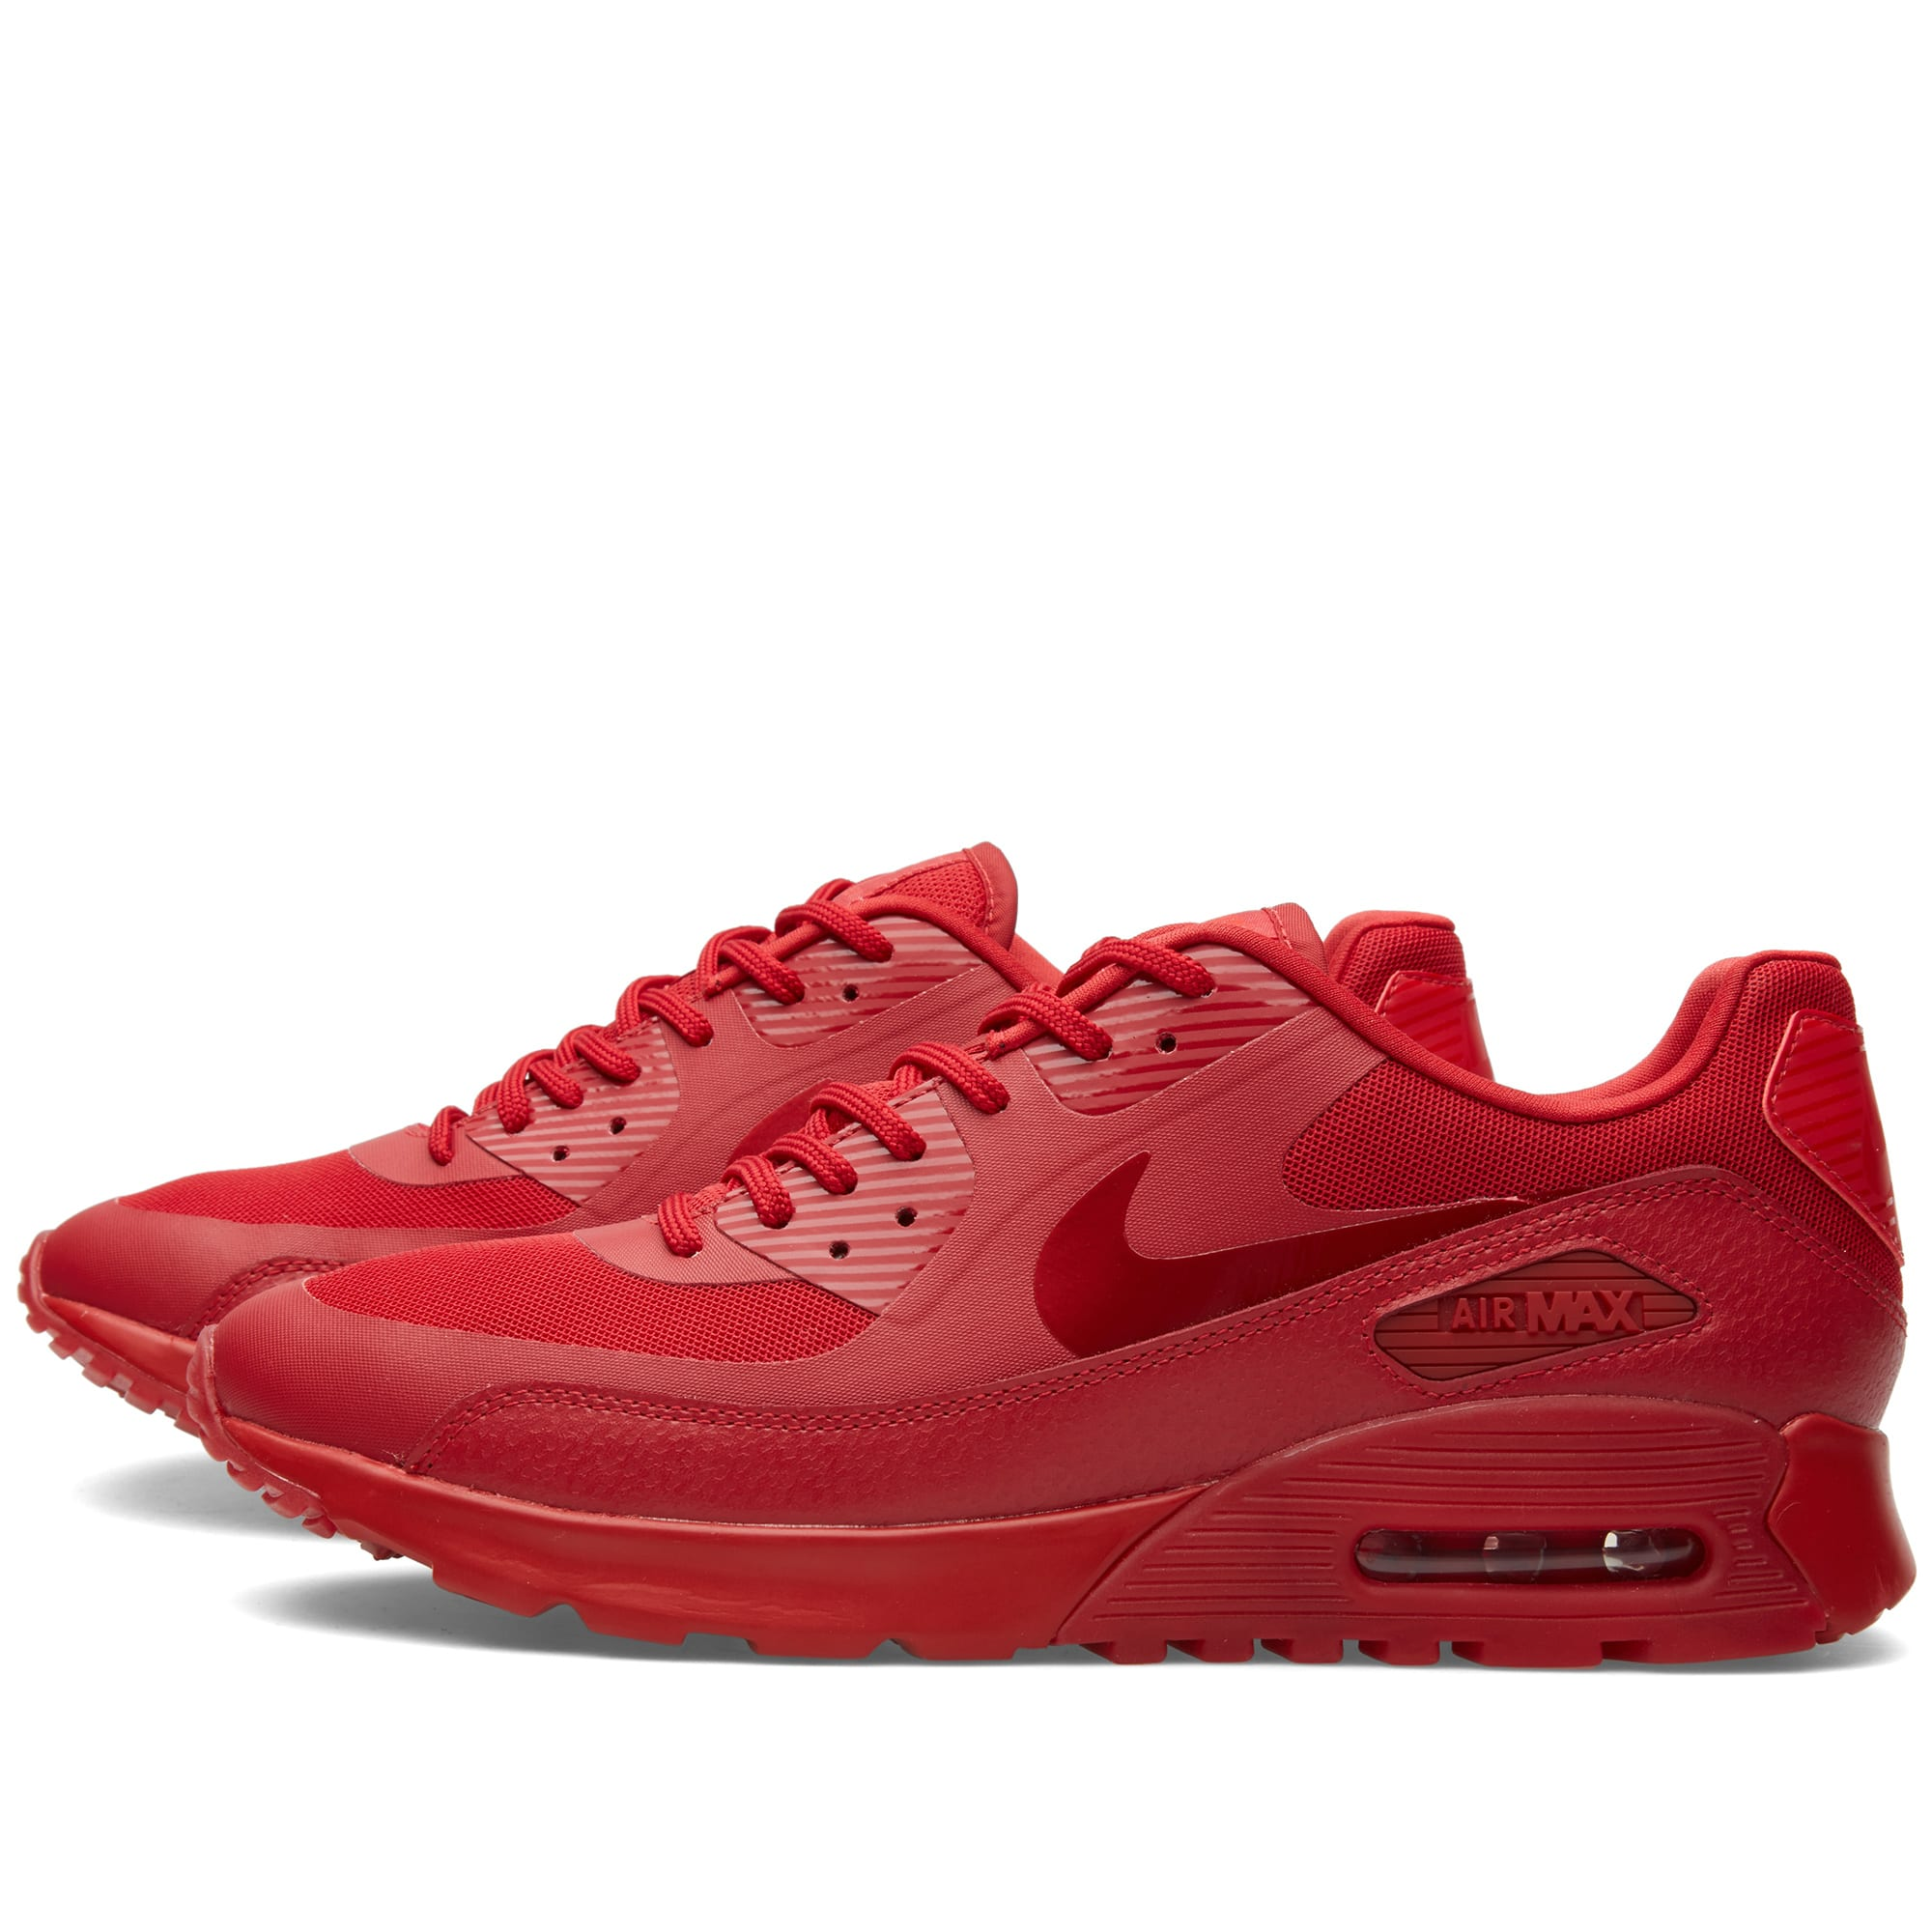 nike dunk grise - Nike Air Max 90 University Red